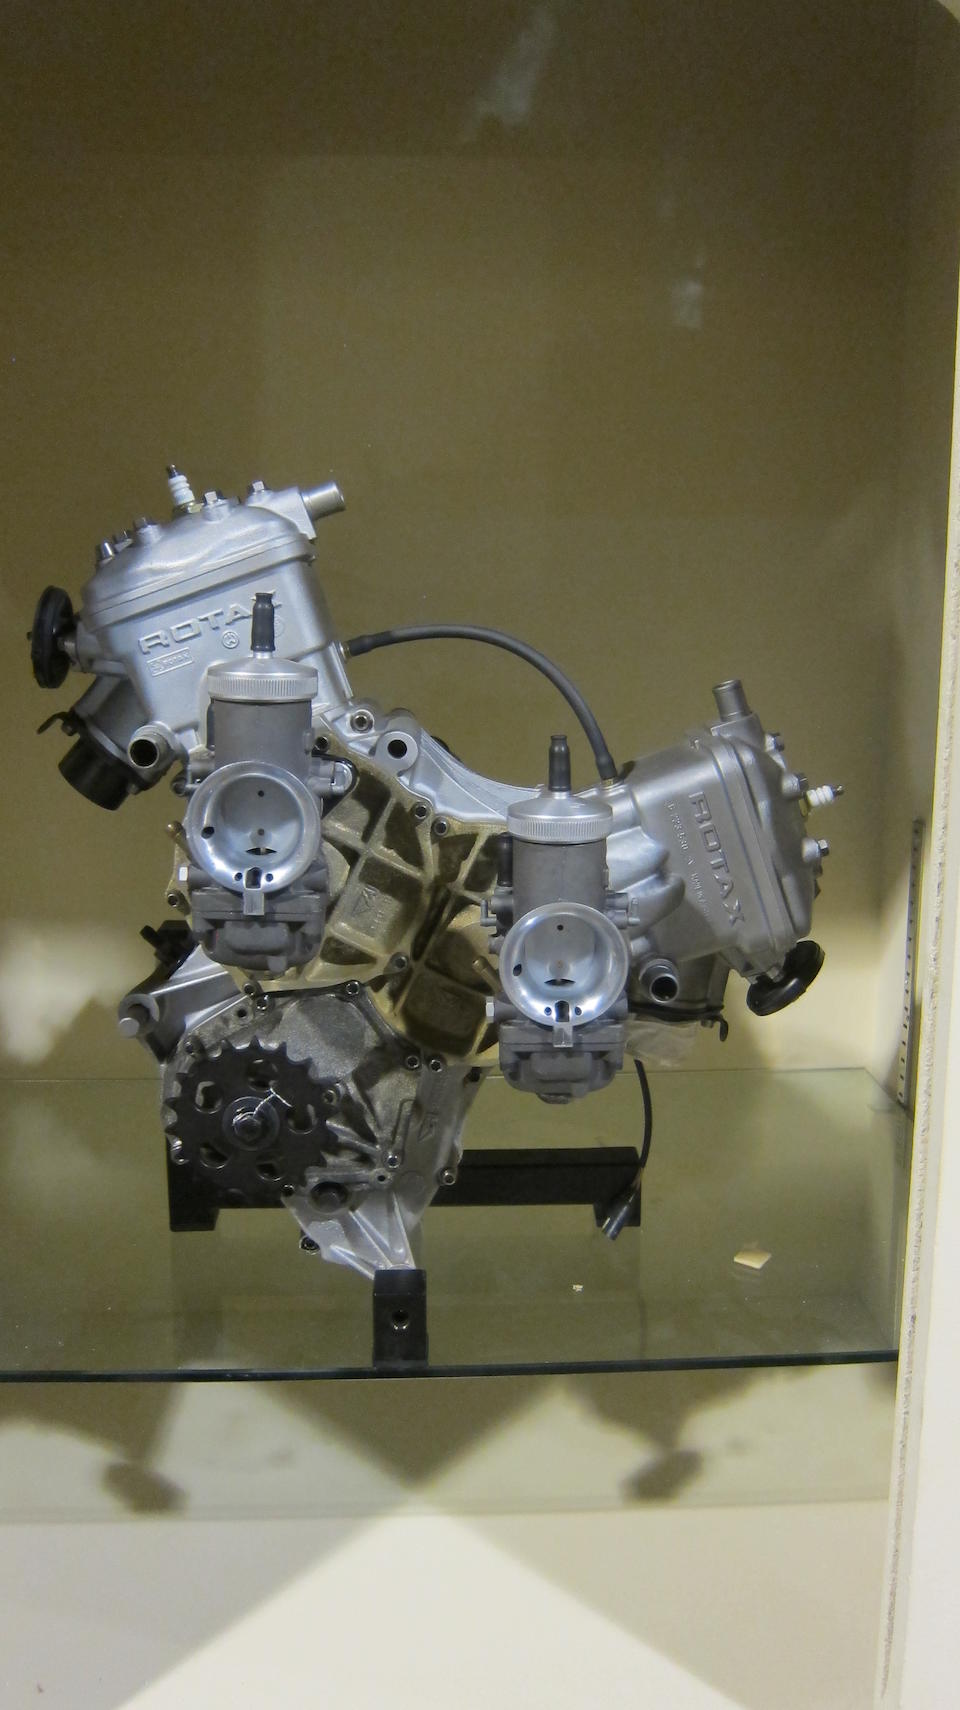 A Rotax V-twin water cooled engine believed Grand Prix type